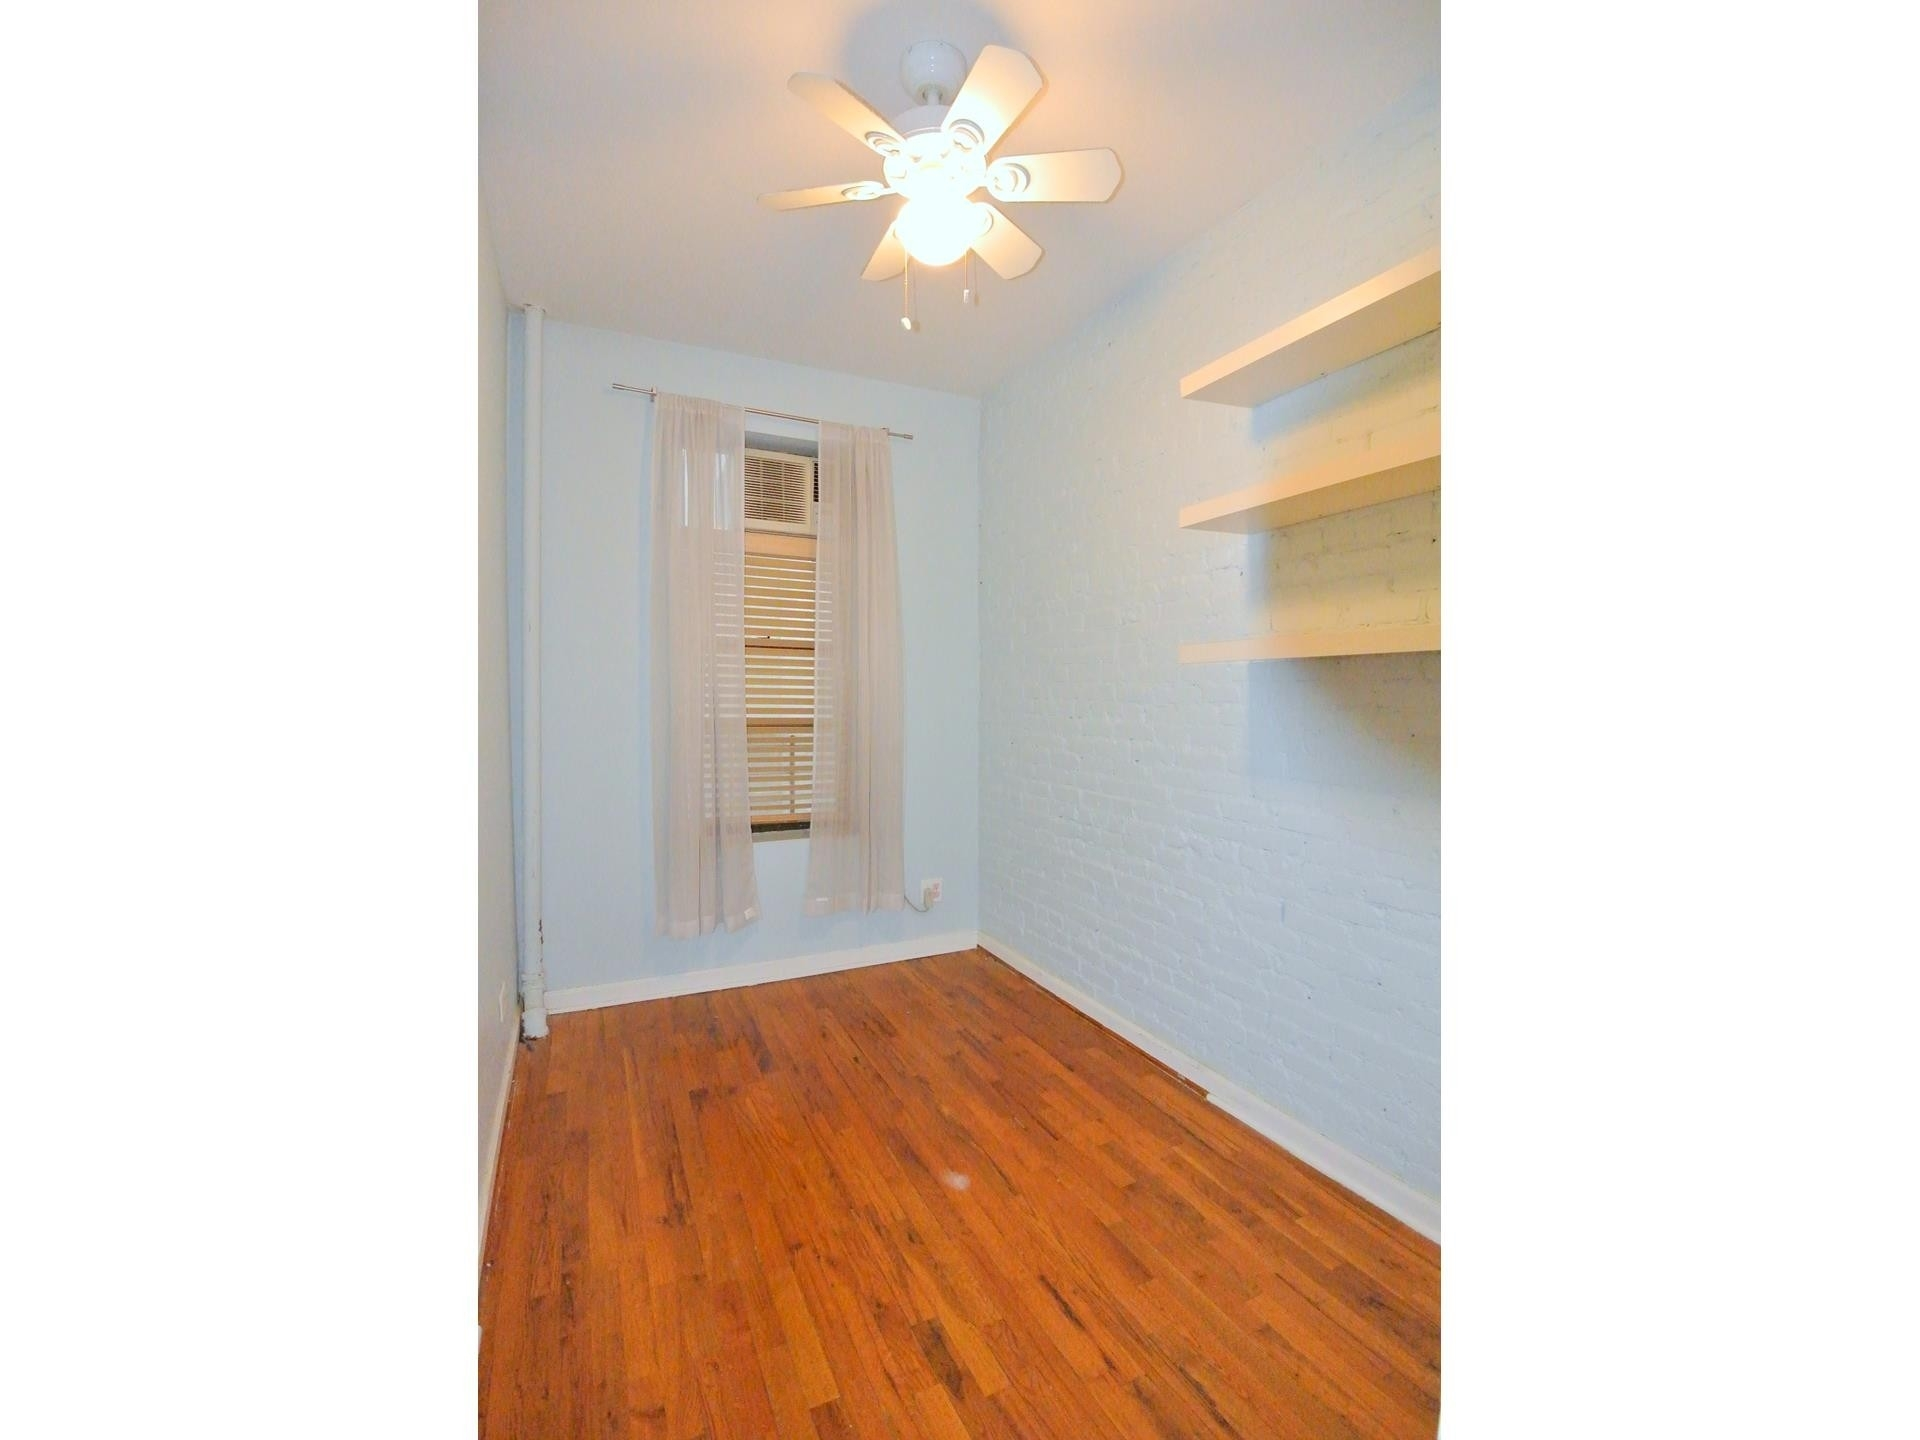 8. Co-op Properties for Sale at 501 West 122nd St, A1 Morningside Heights, New York, NY 10027